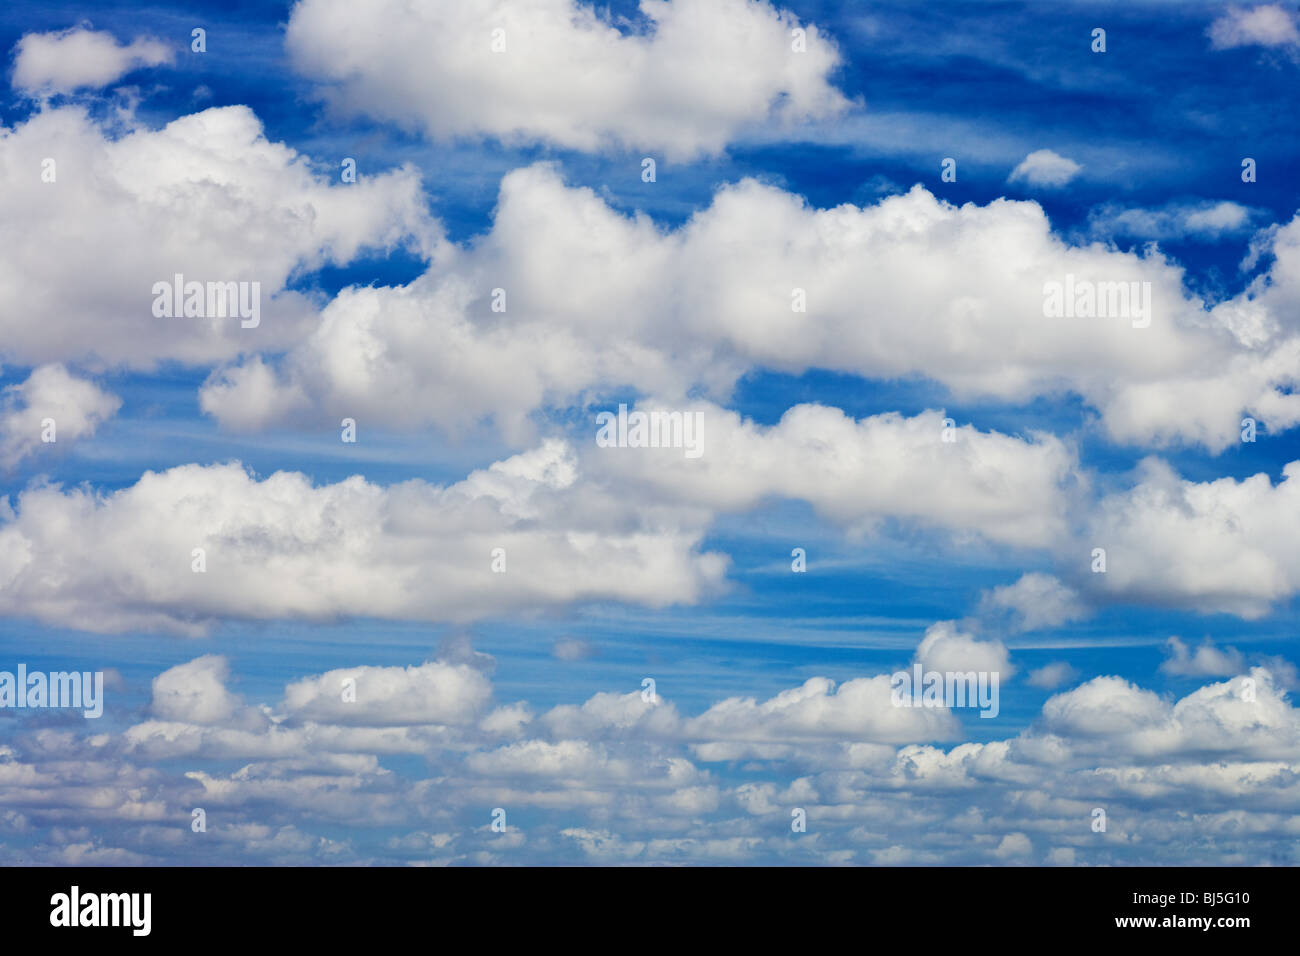 blue sky with white fluffy clouds background Stock Photo